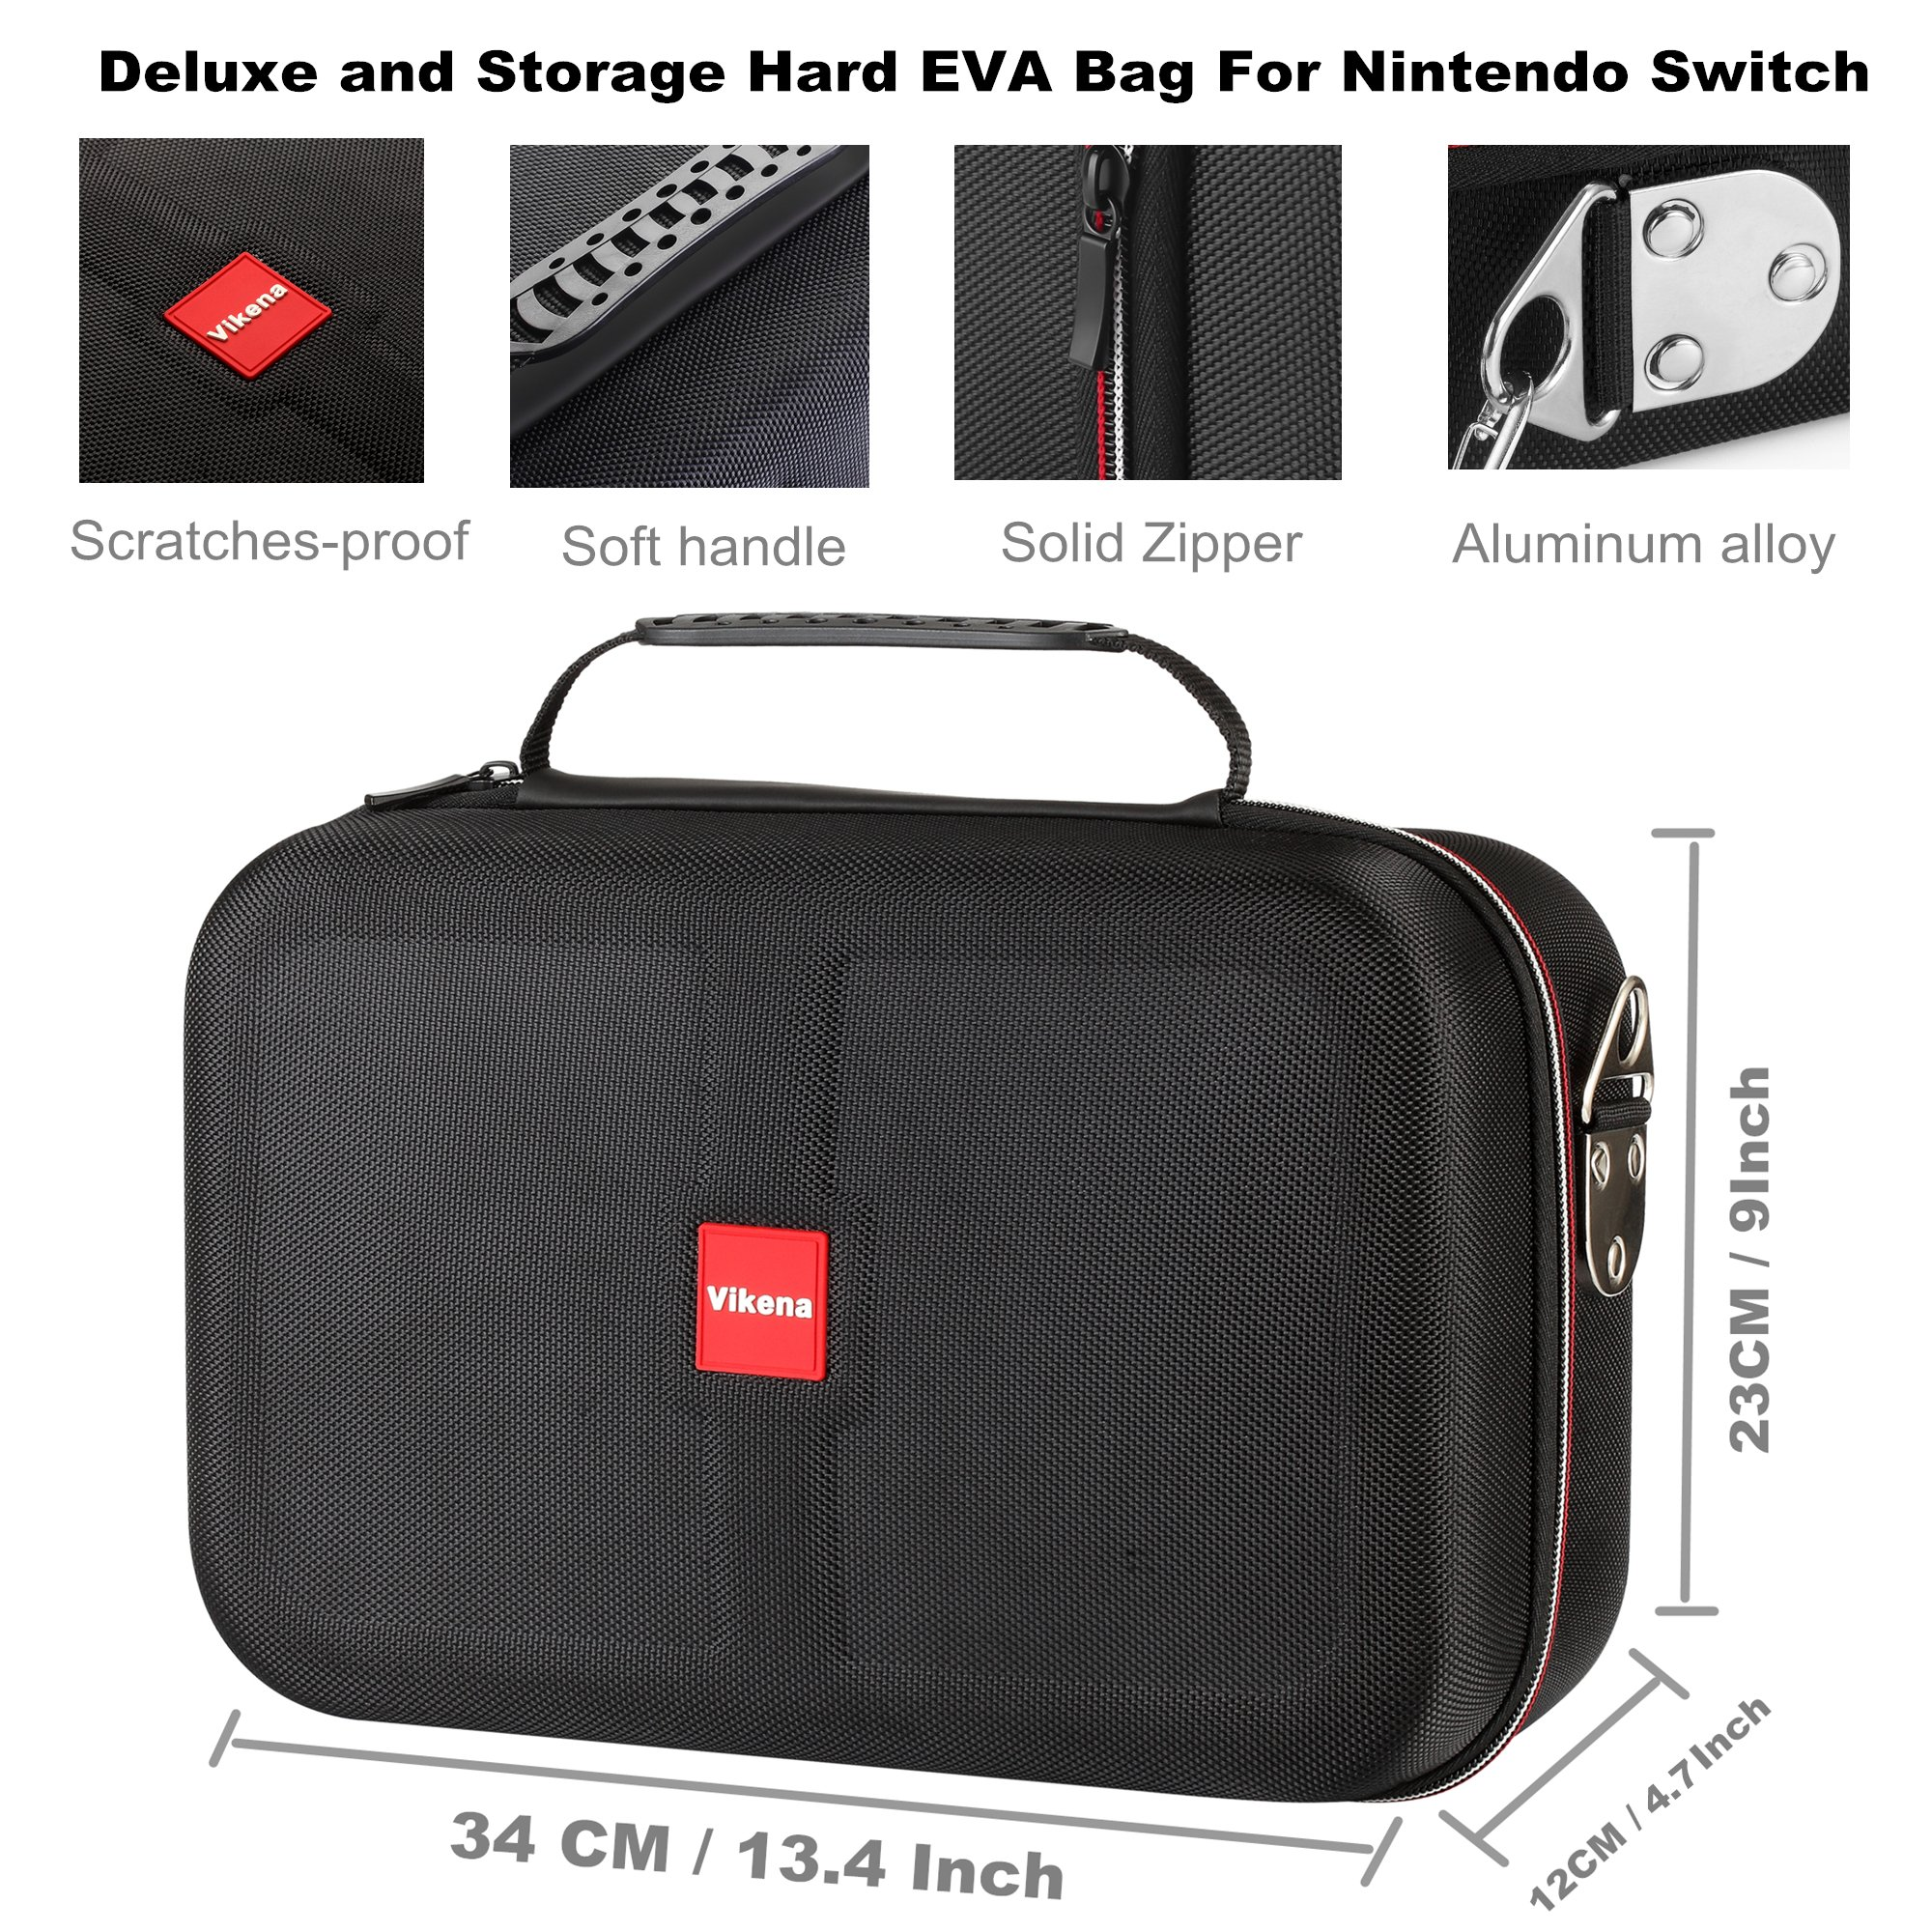 Vikena Deluxe Travel and Storage Case for Nintendo Switch,Game Carrying Case fit for Switch Pro Controller,Switch Console and Accessories,Black by Vikena (Image #3)